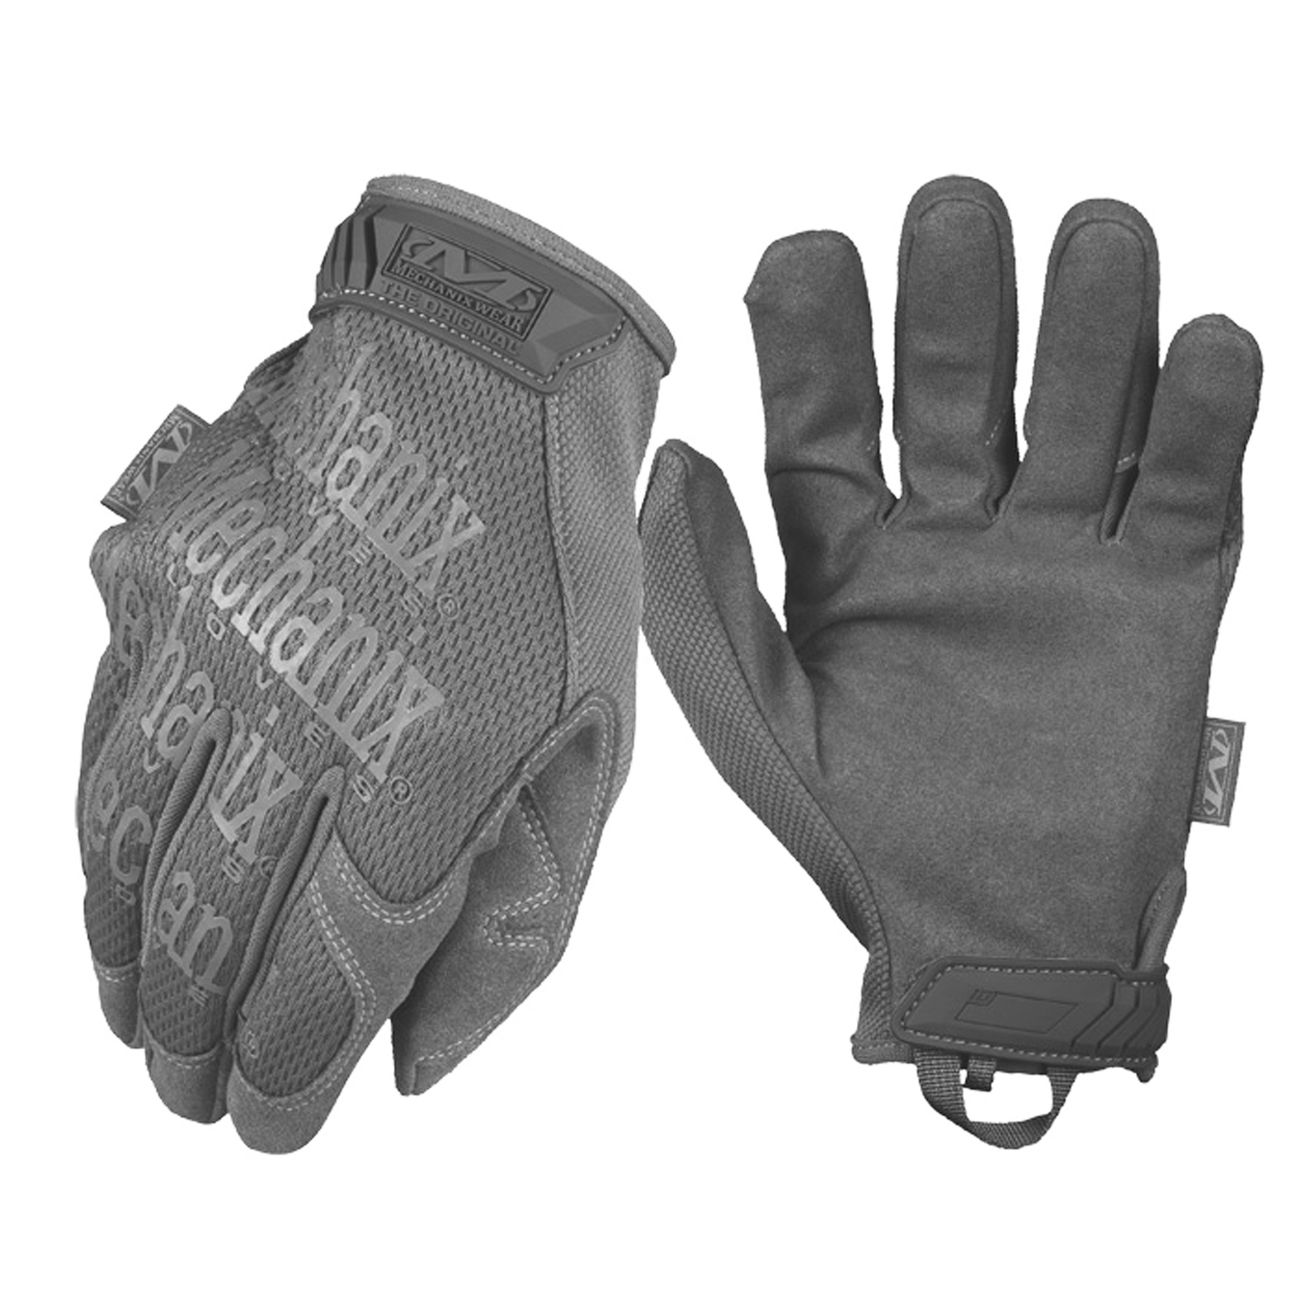 Mechanix Wear Original Glove Handschuhe grau 2